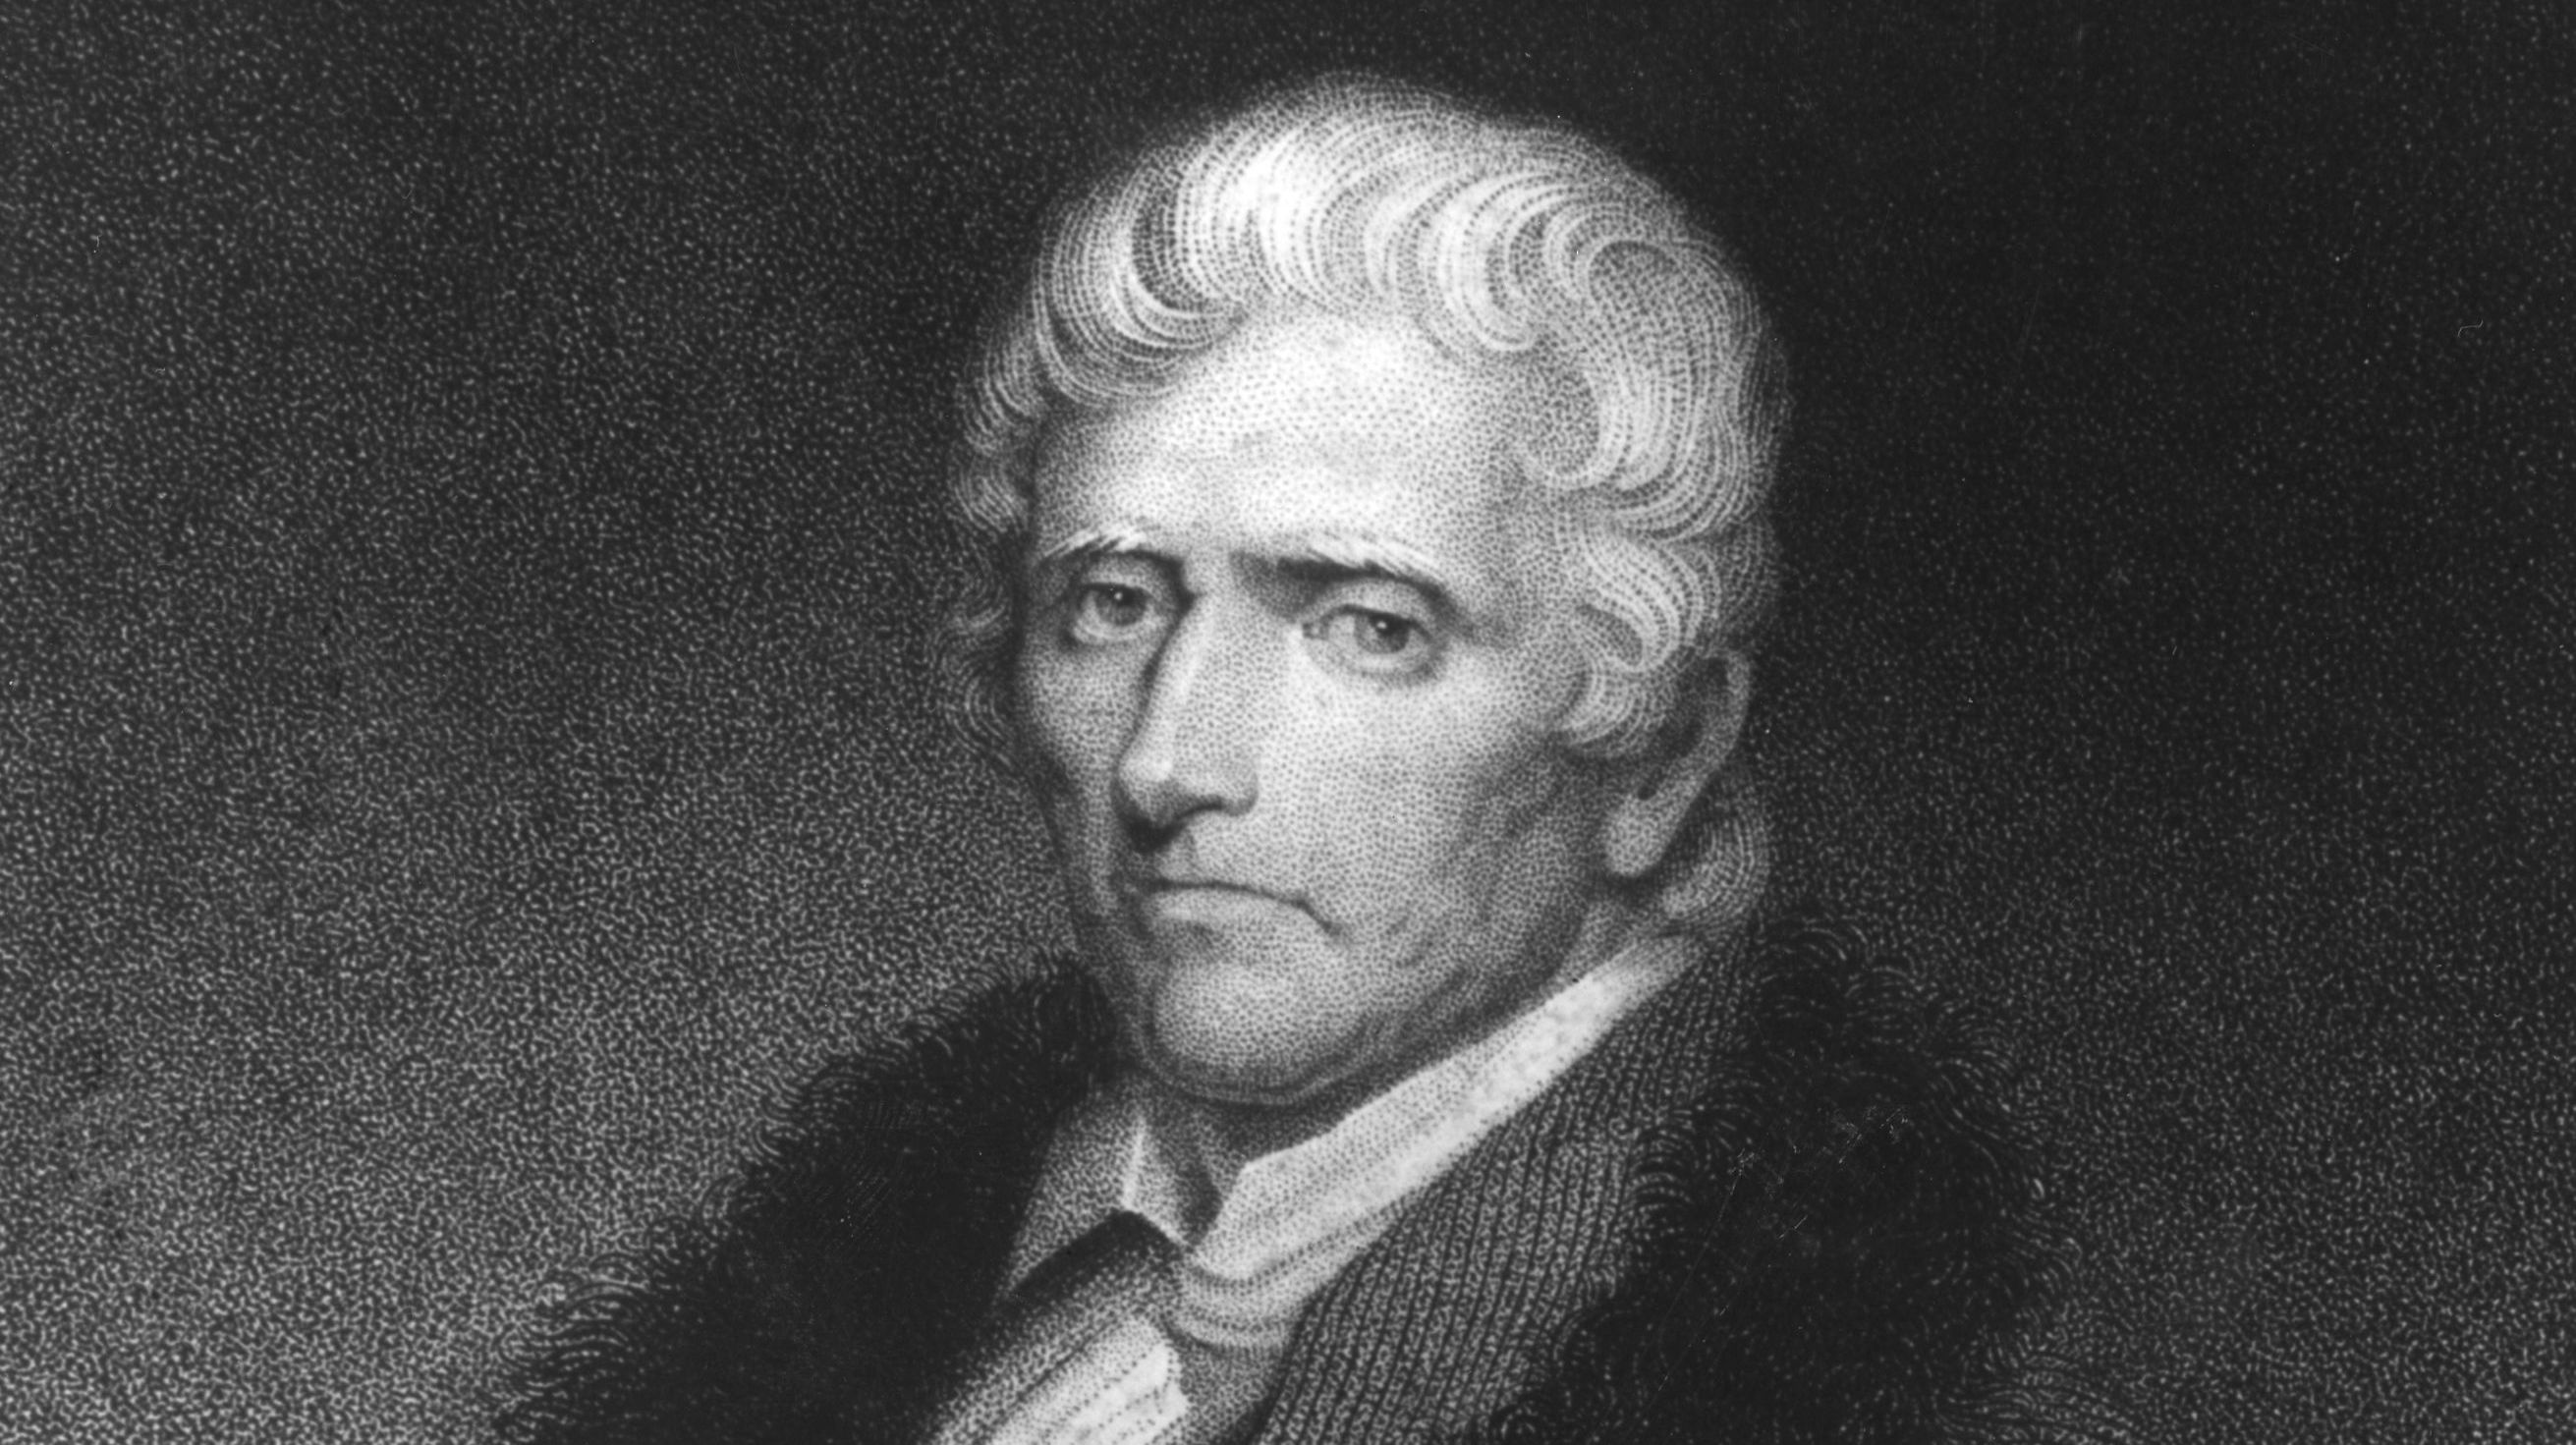 Facts About Daniel Boone